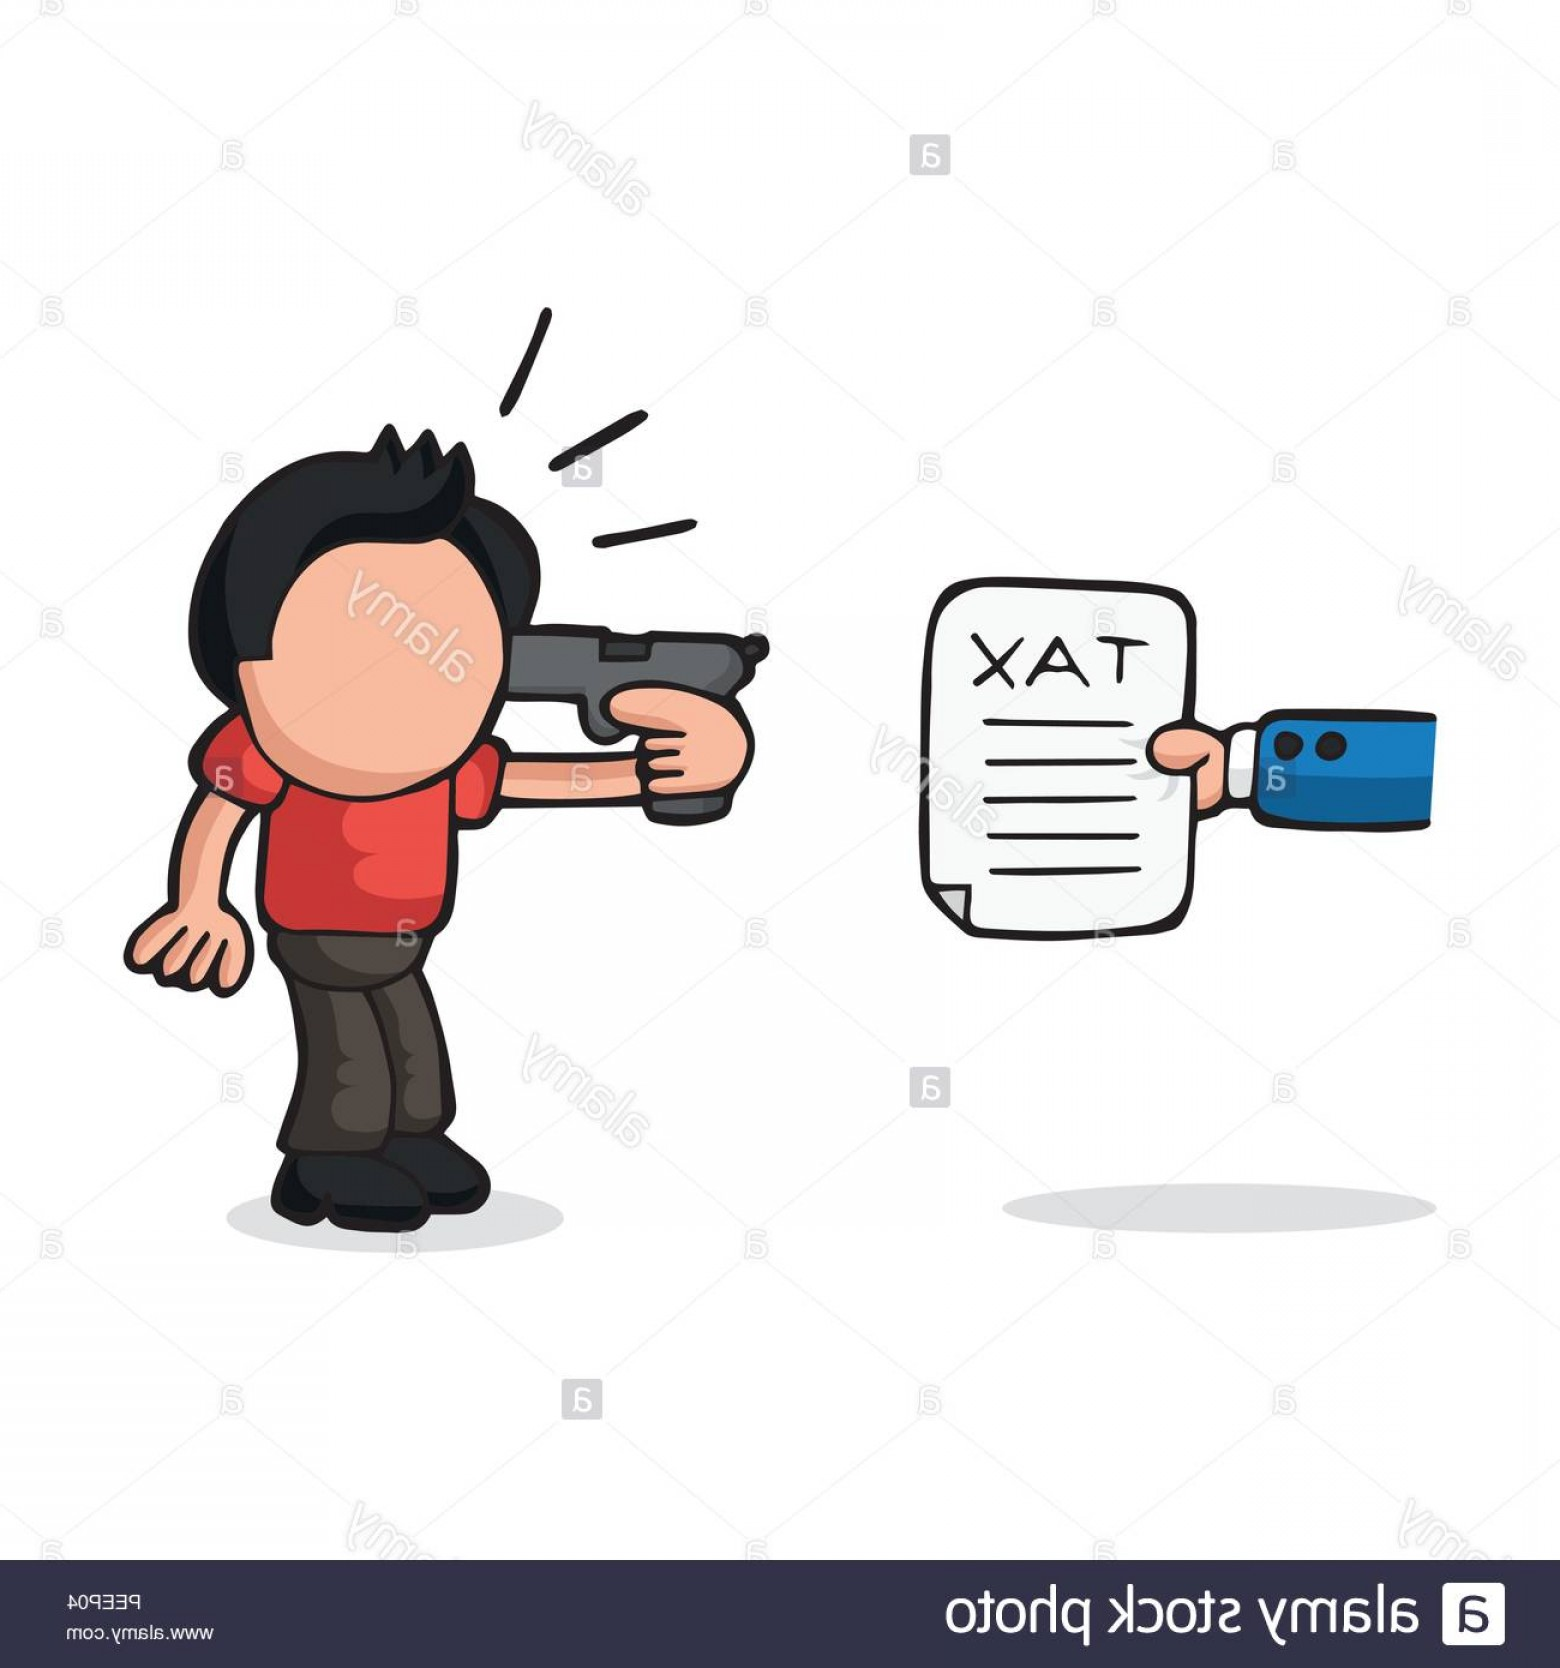 Finger Gun To Head Vector: Vector Hand Drawn Cartoon Illustration Of Depressed Man Holding Gun To Head Presented With Tax Image